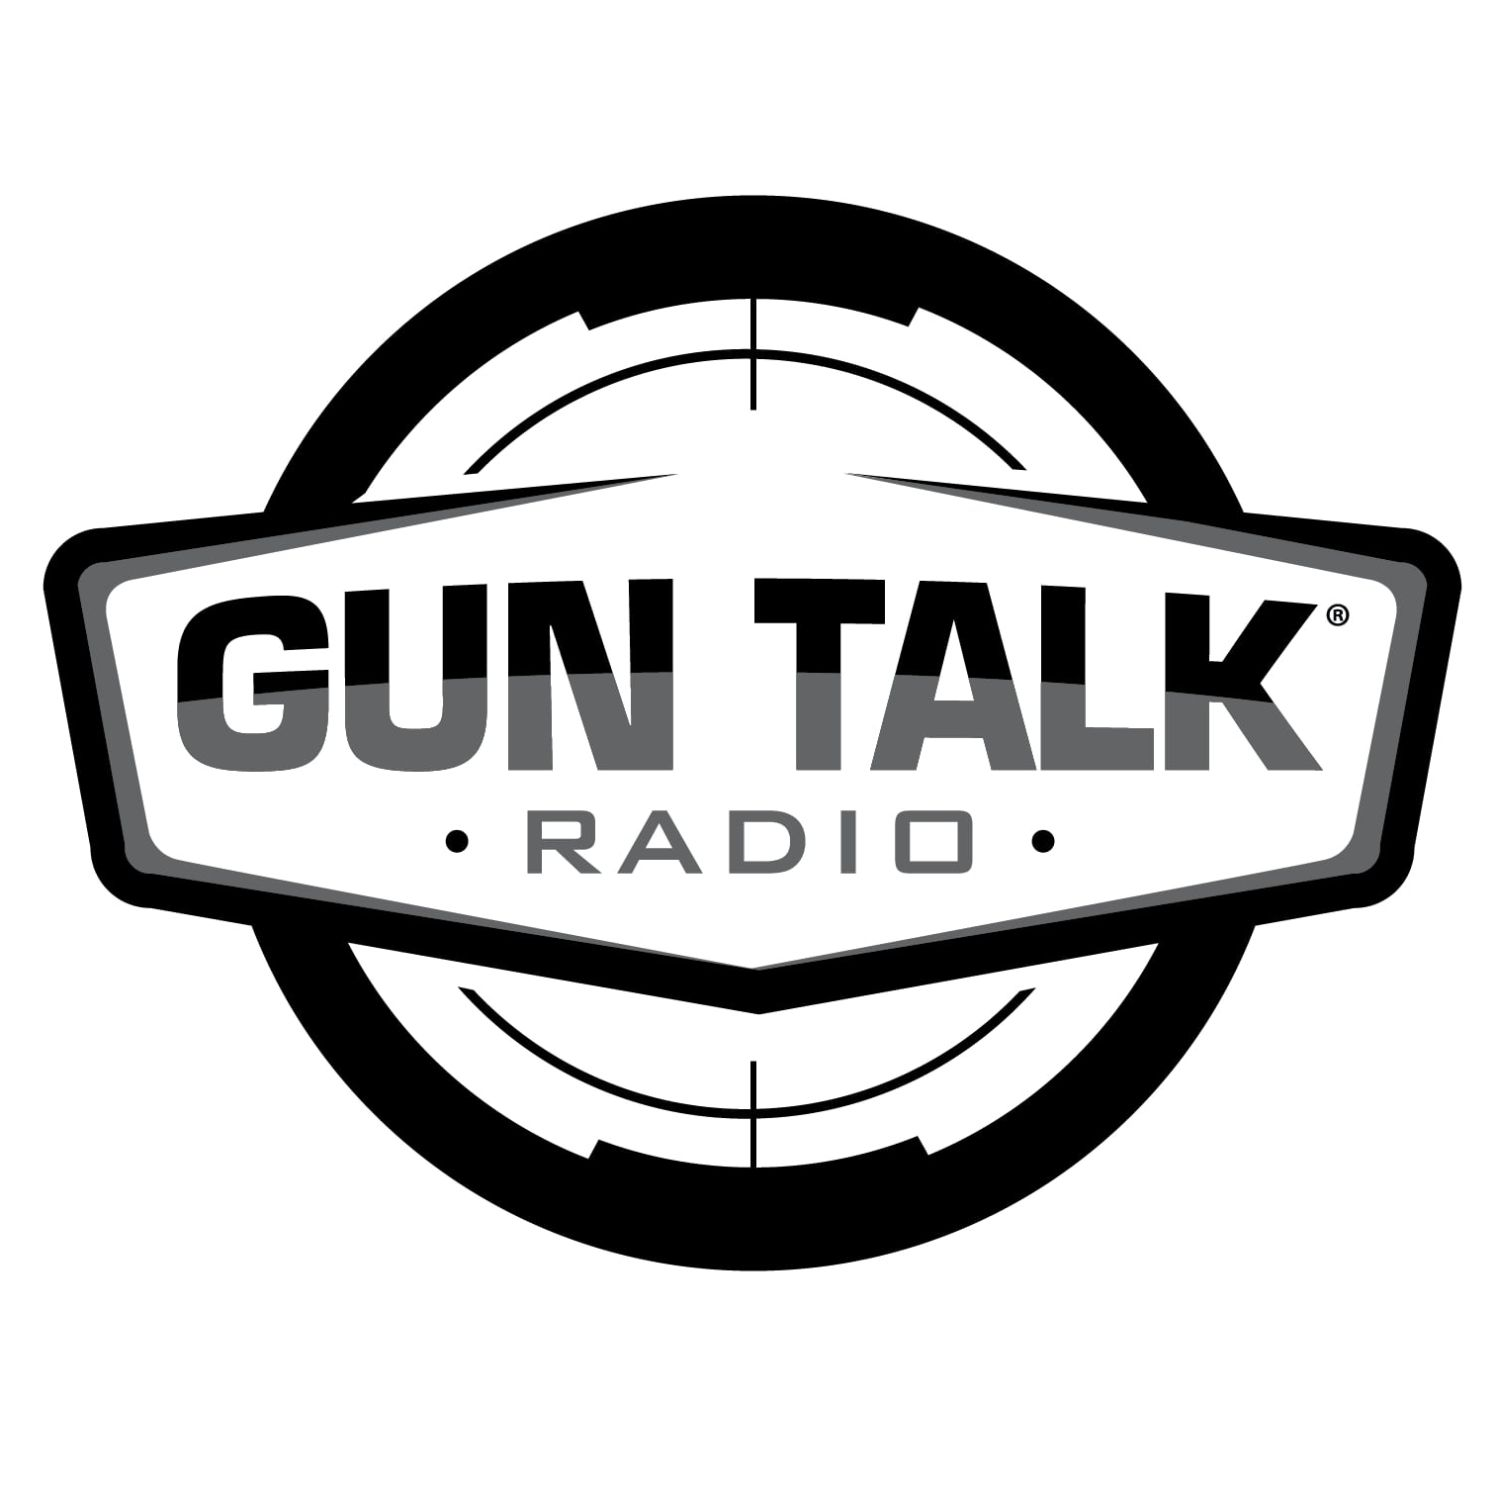 Artwork for Guntalk 2008-03-23 Part B